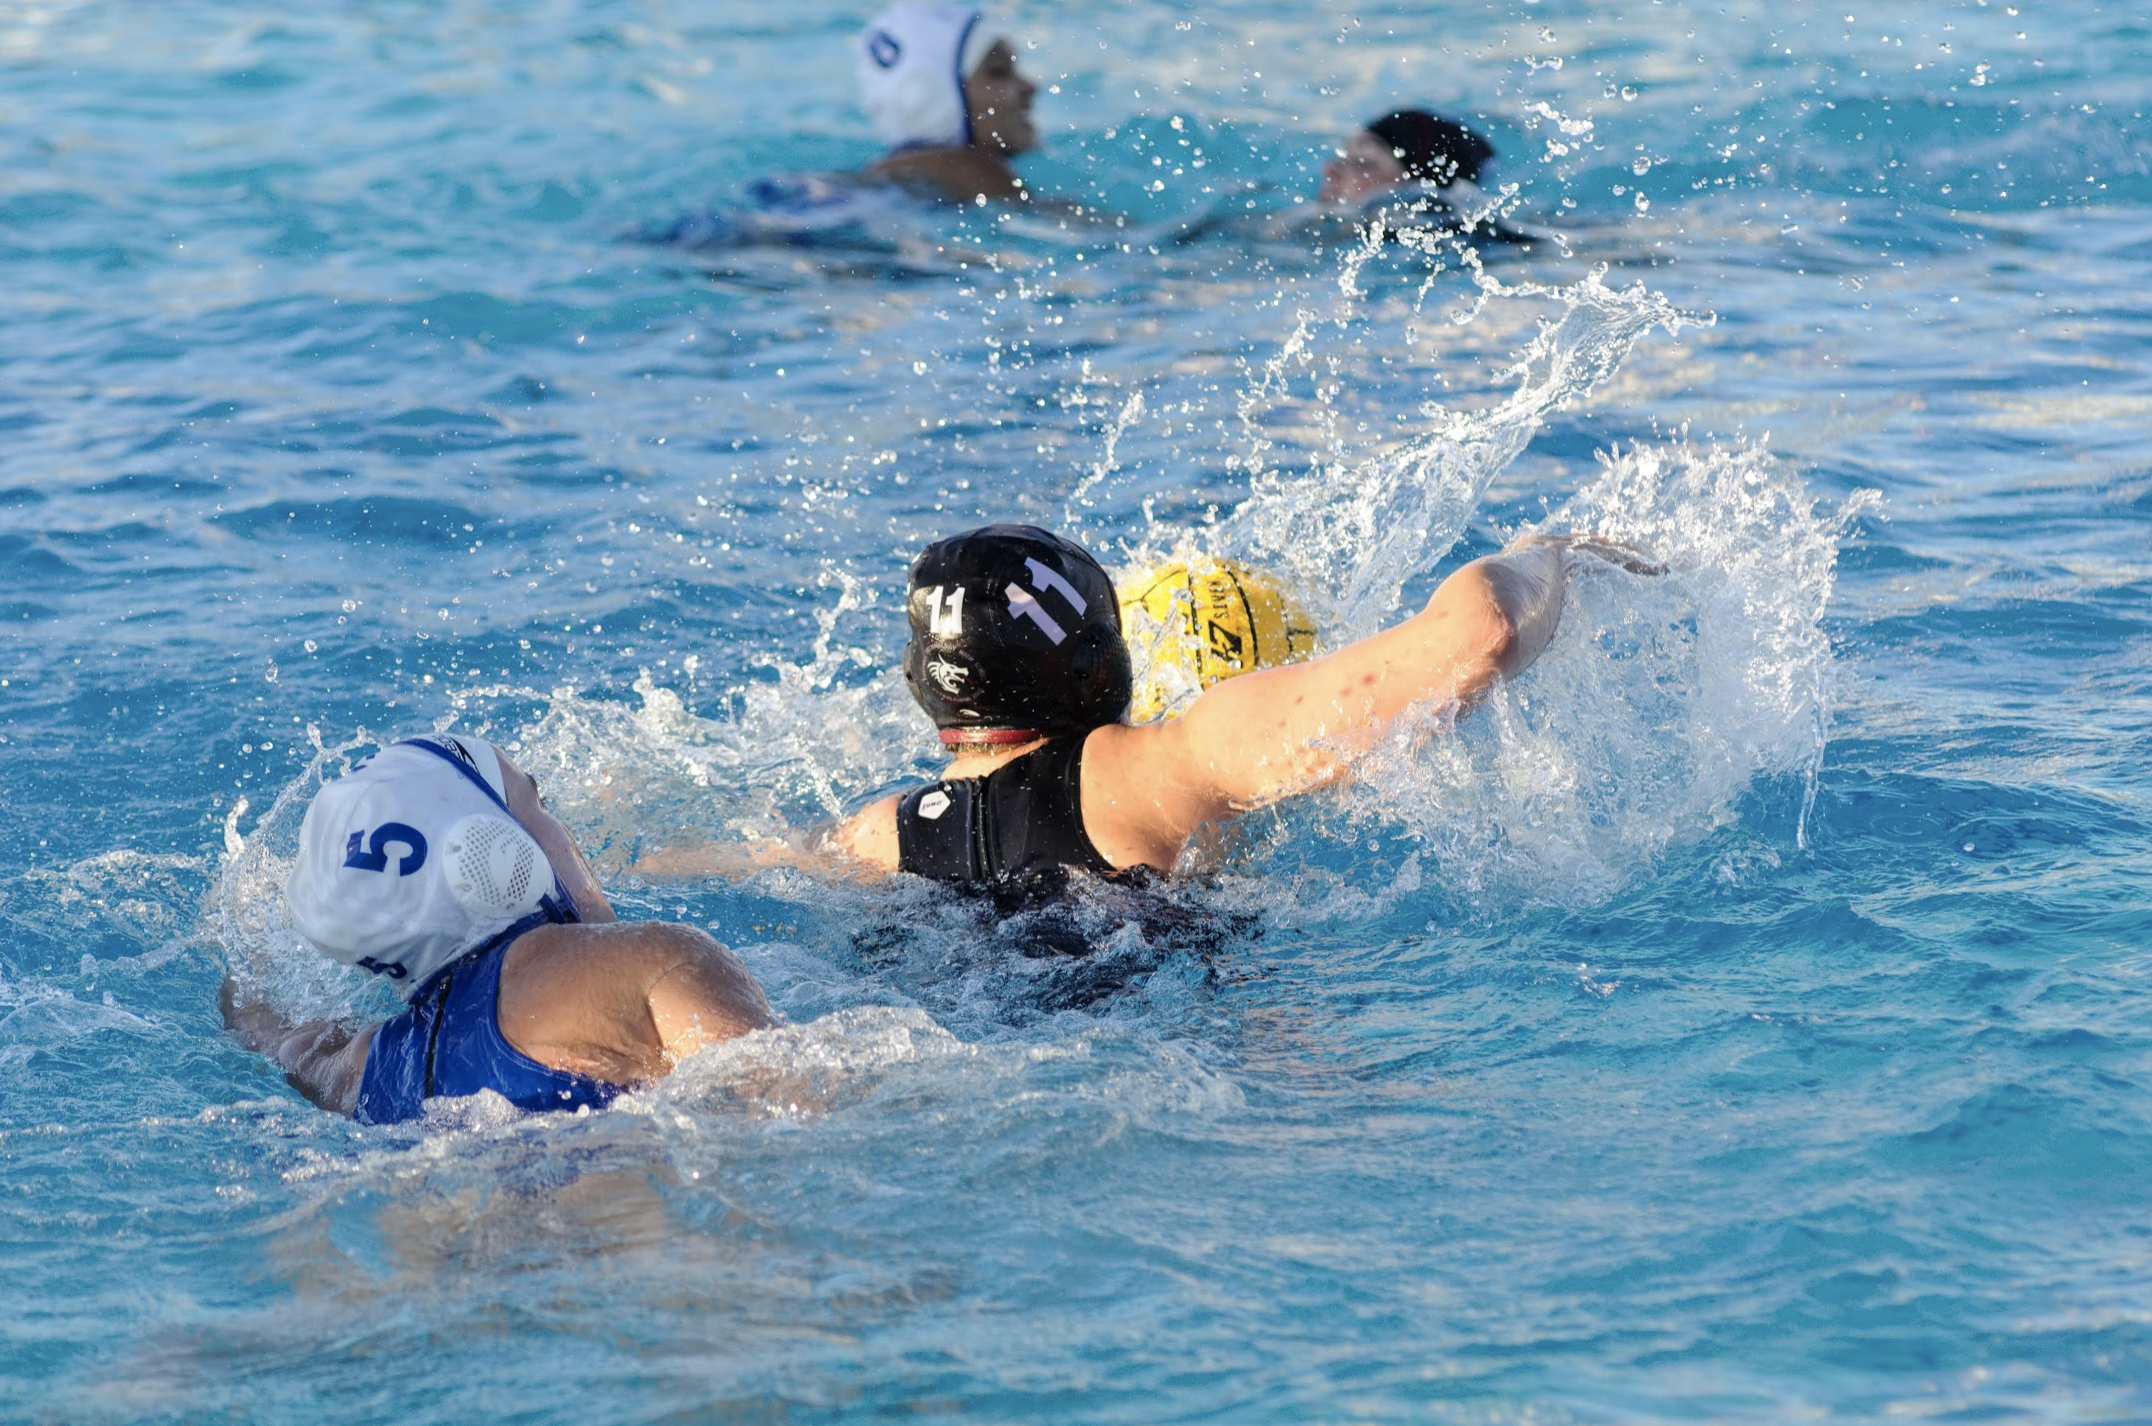 In first home game, girls' water polo cruises to 16-2 win against Cate